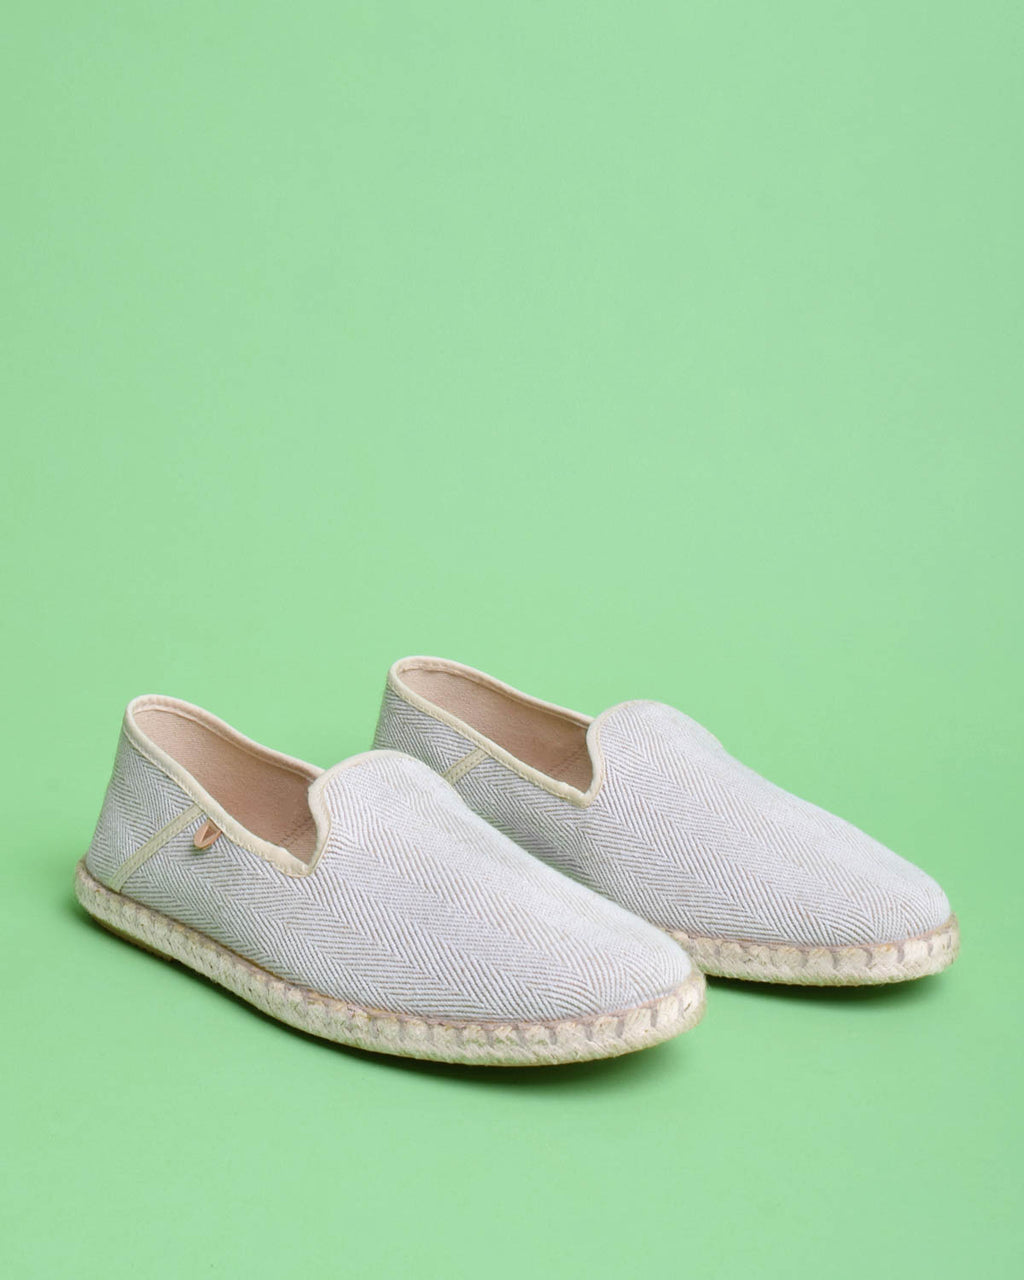 Trevor Chevron Canvas Slip On Shoes - Beige